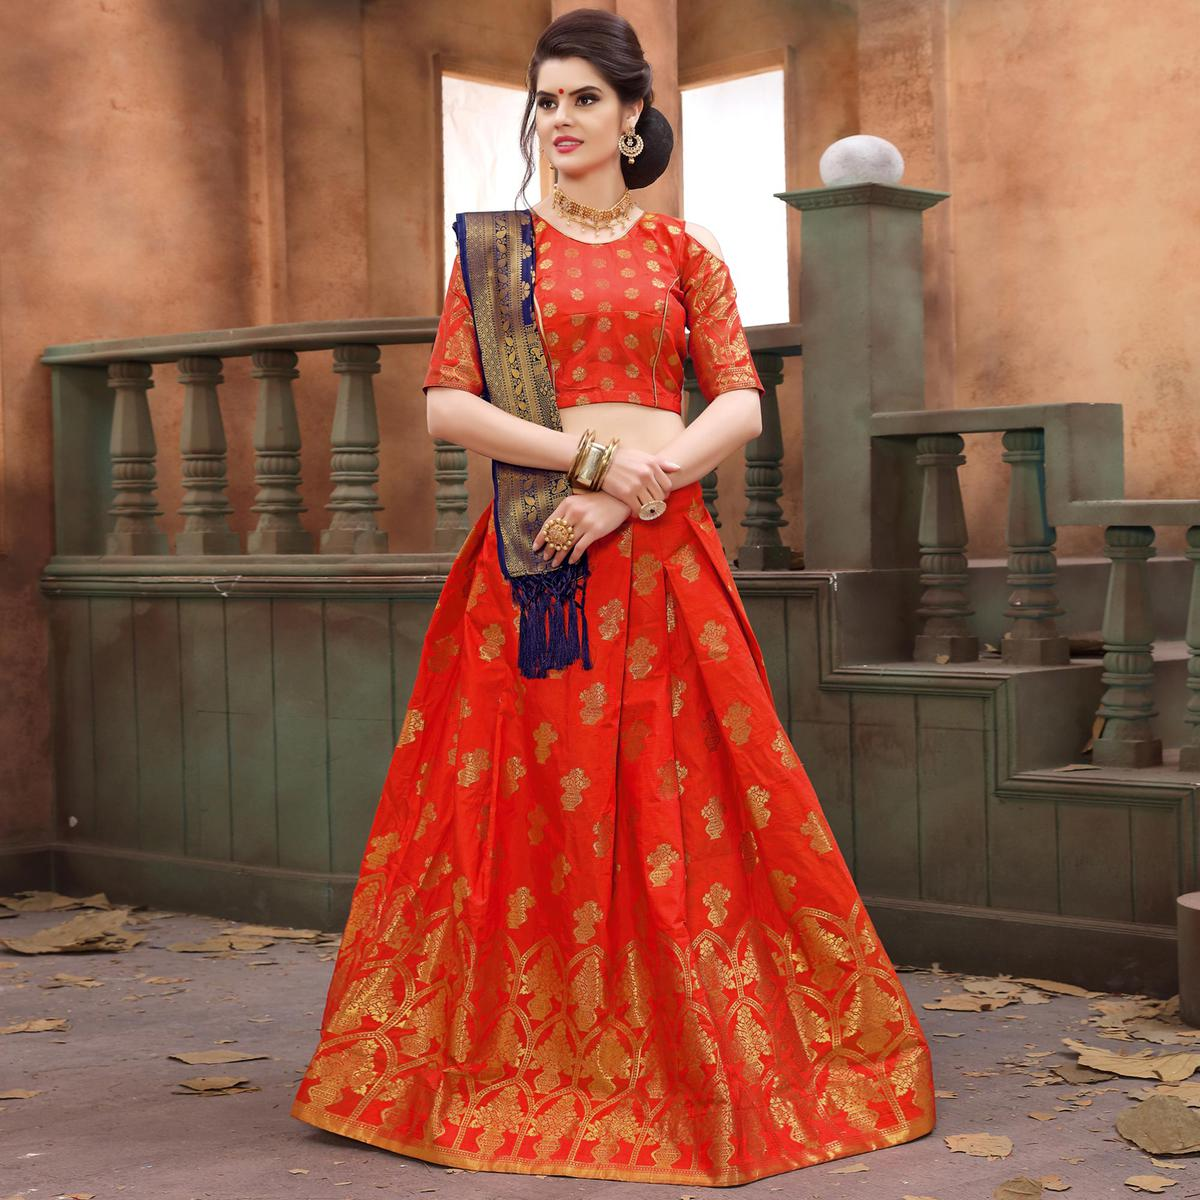 Majesty Orange Colored Festive Wear Embroidered Banarasi Silk Lehenga Choli